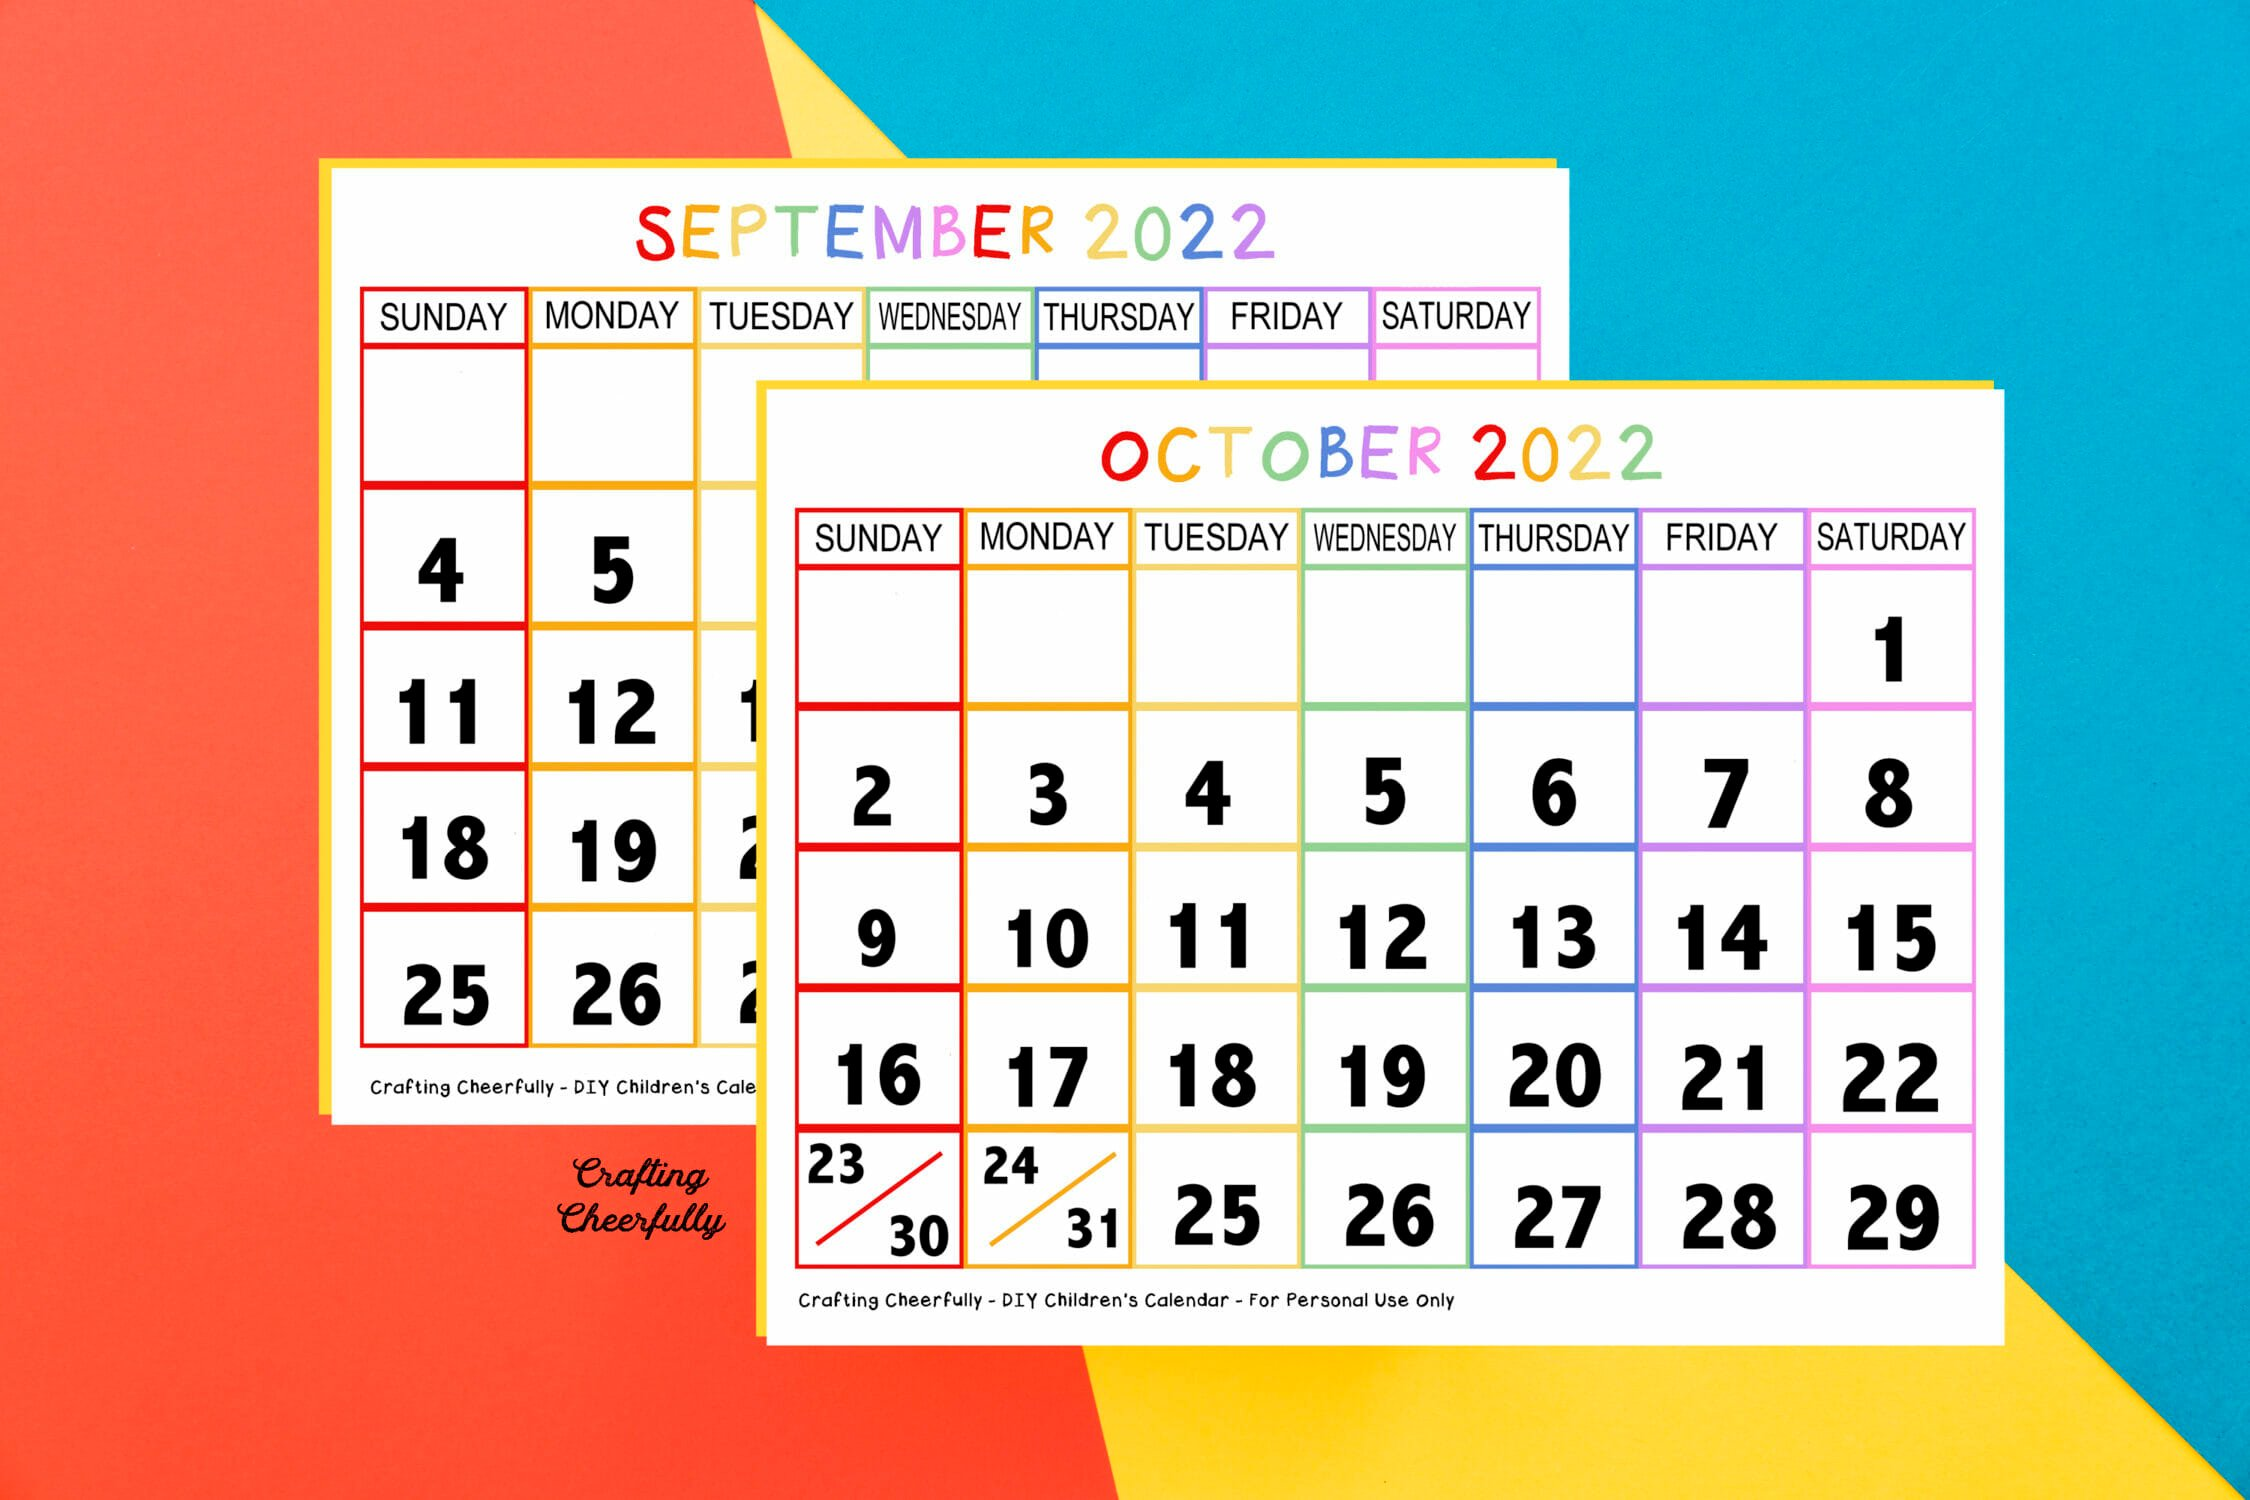 Free calendar pages on a red, yellow and blue background..